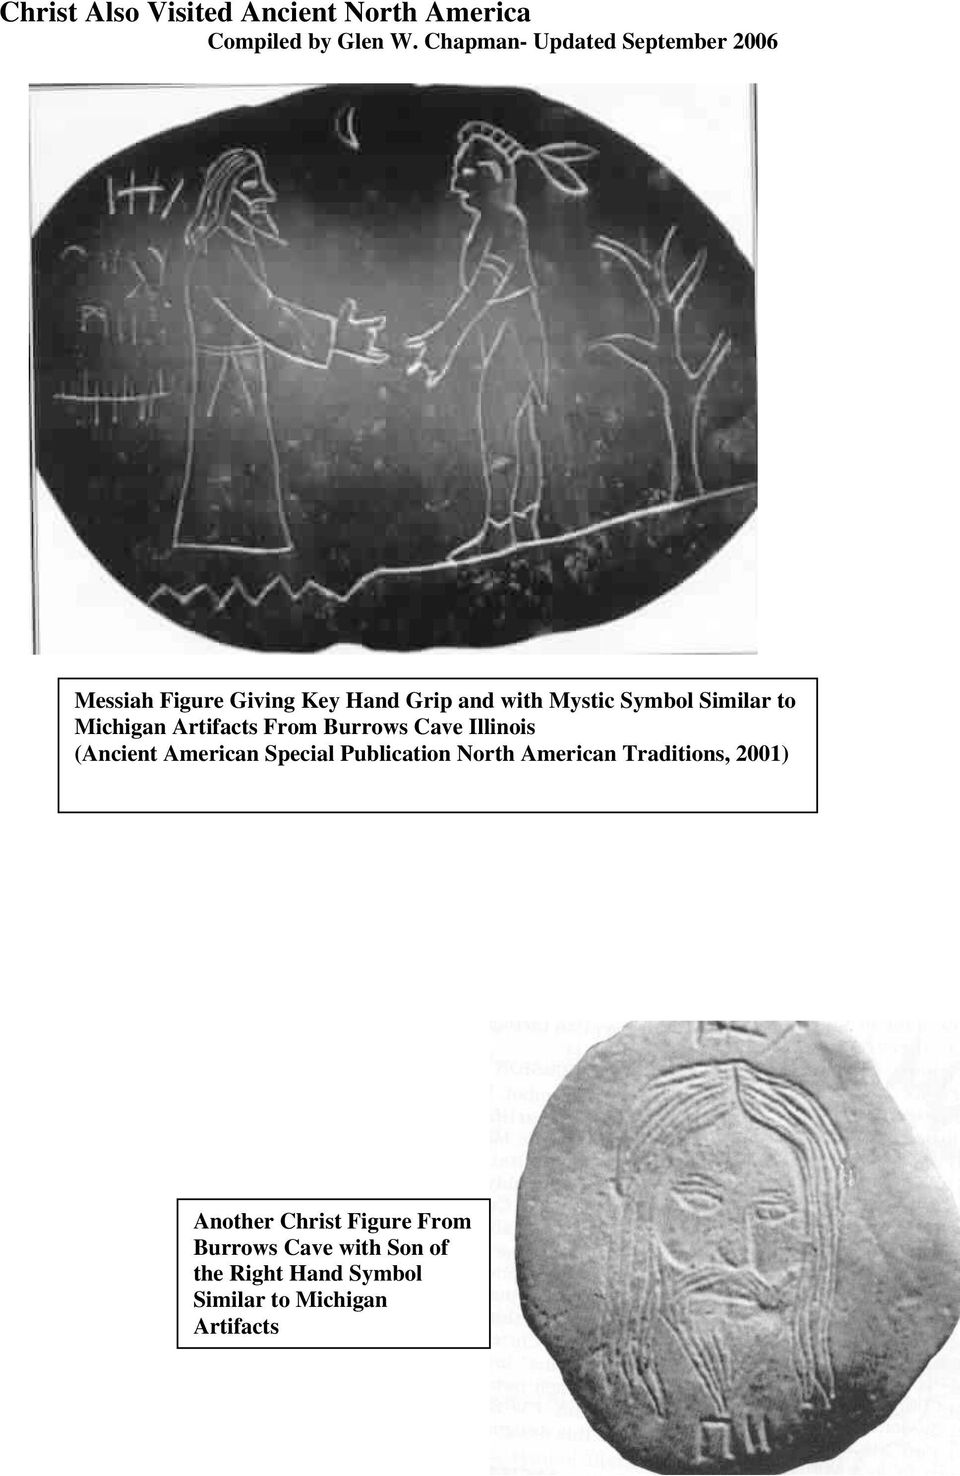 Similar to Michigan Artifacts From Burrows Cave Illinois (Ancient American Special Publication